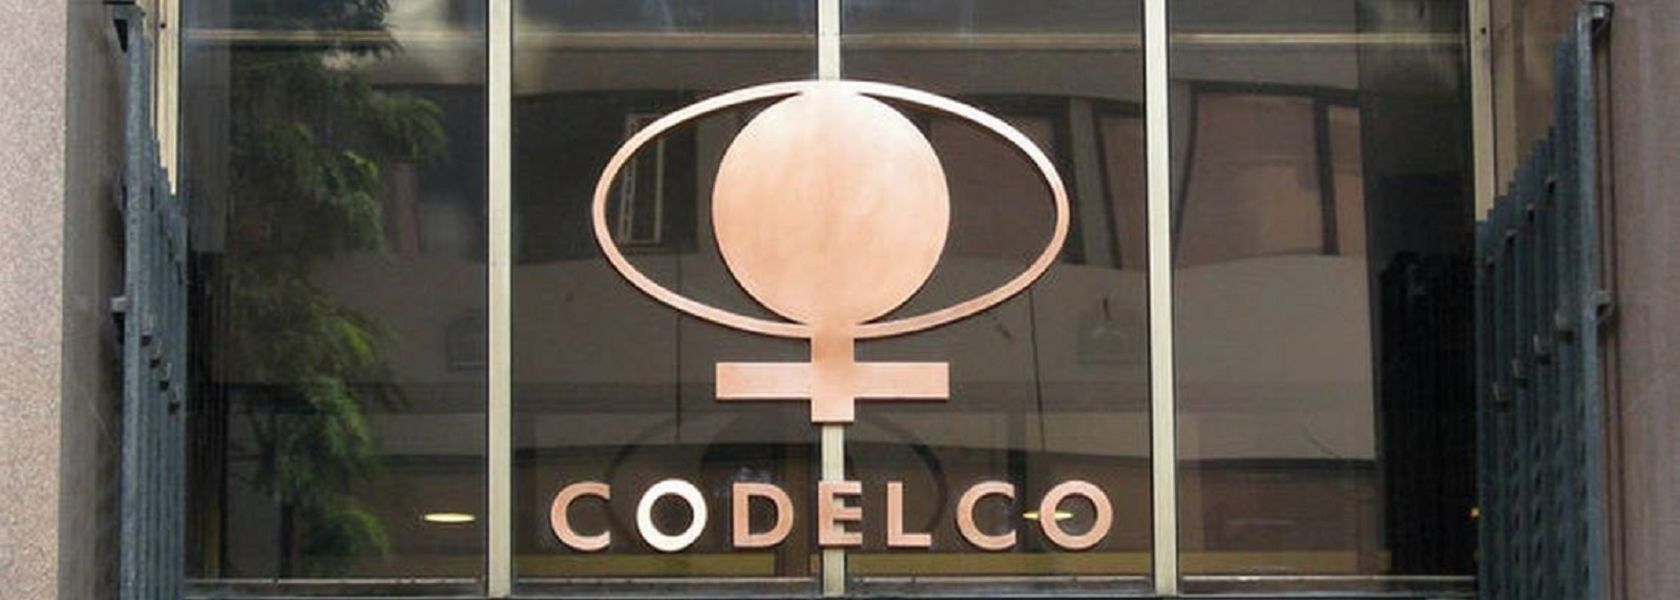 Codelco, Chile